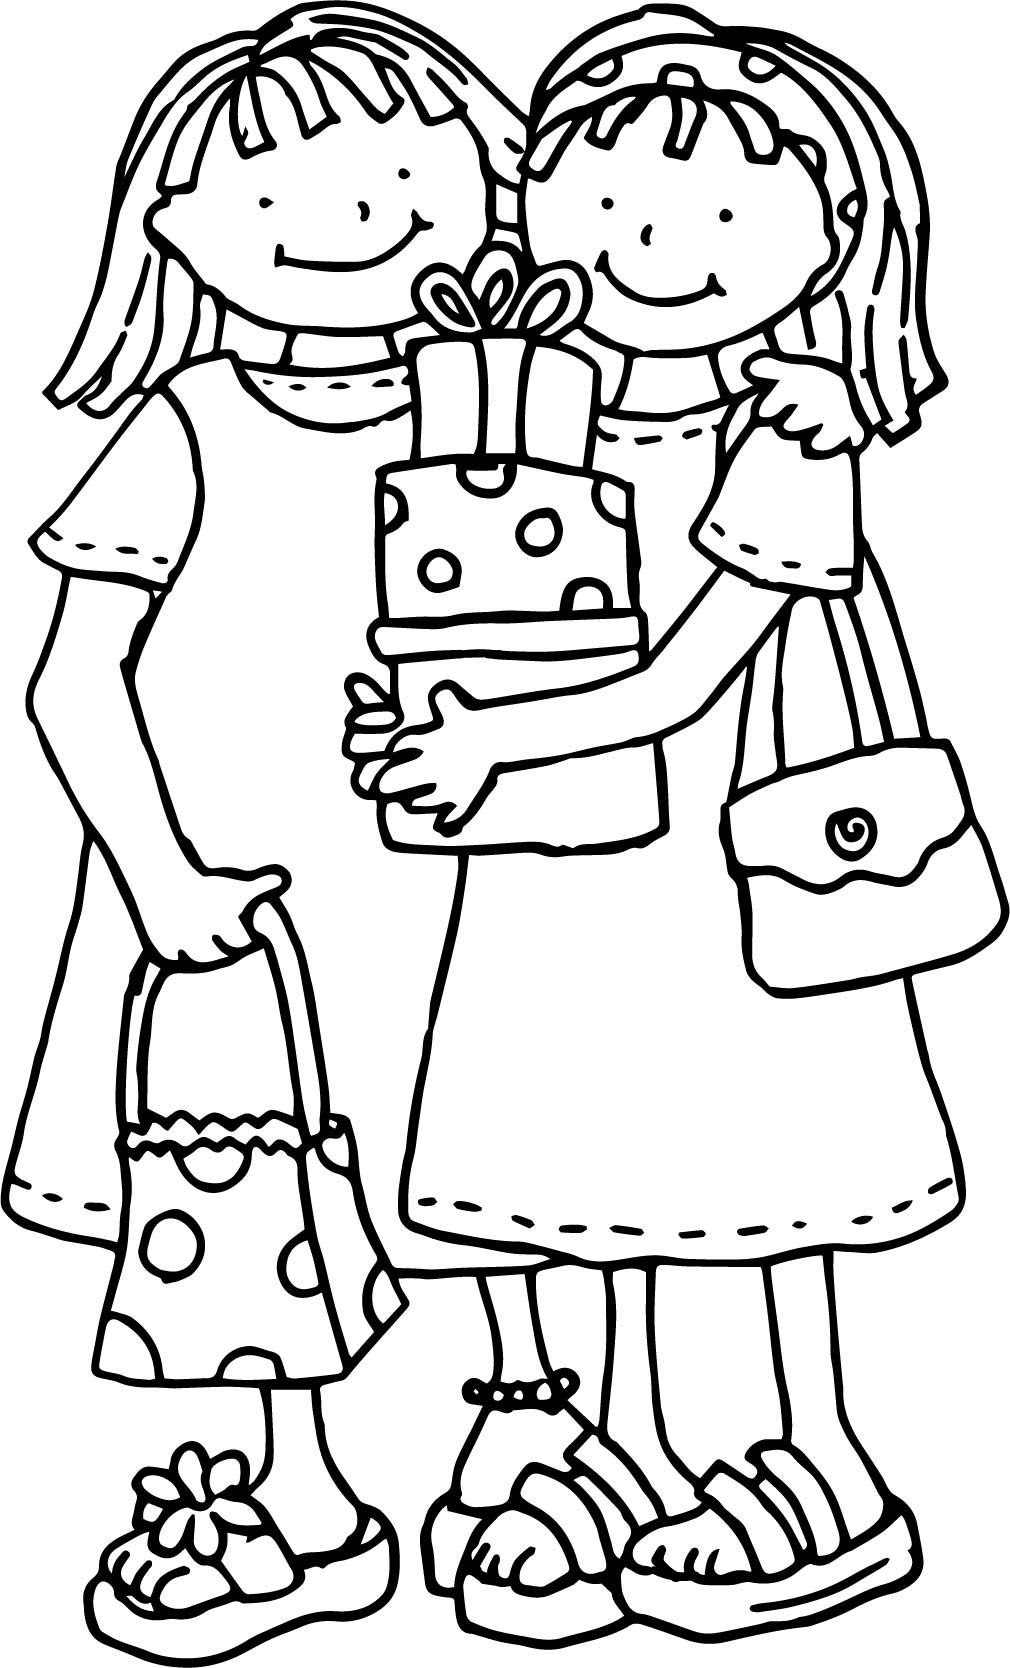 Friendship Girl Coloring Page